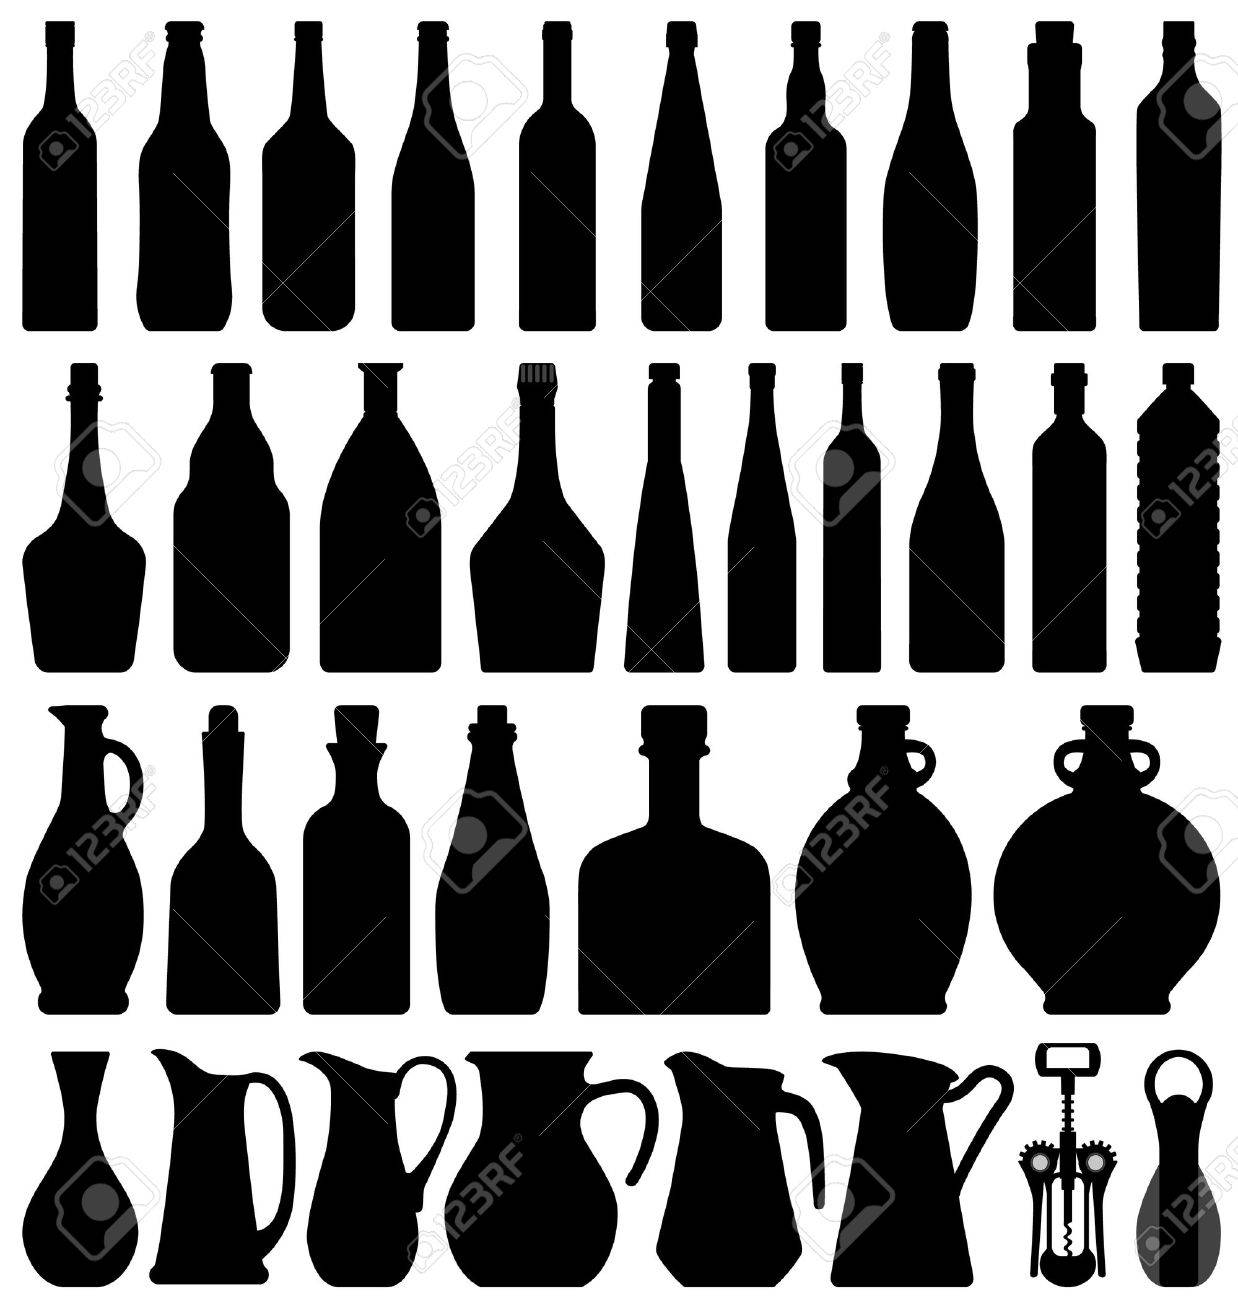 Wine Beer Bottle Silhouette Royalty Free Cliparts, Vectors, And ...